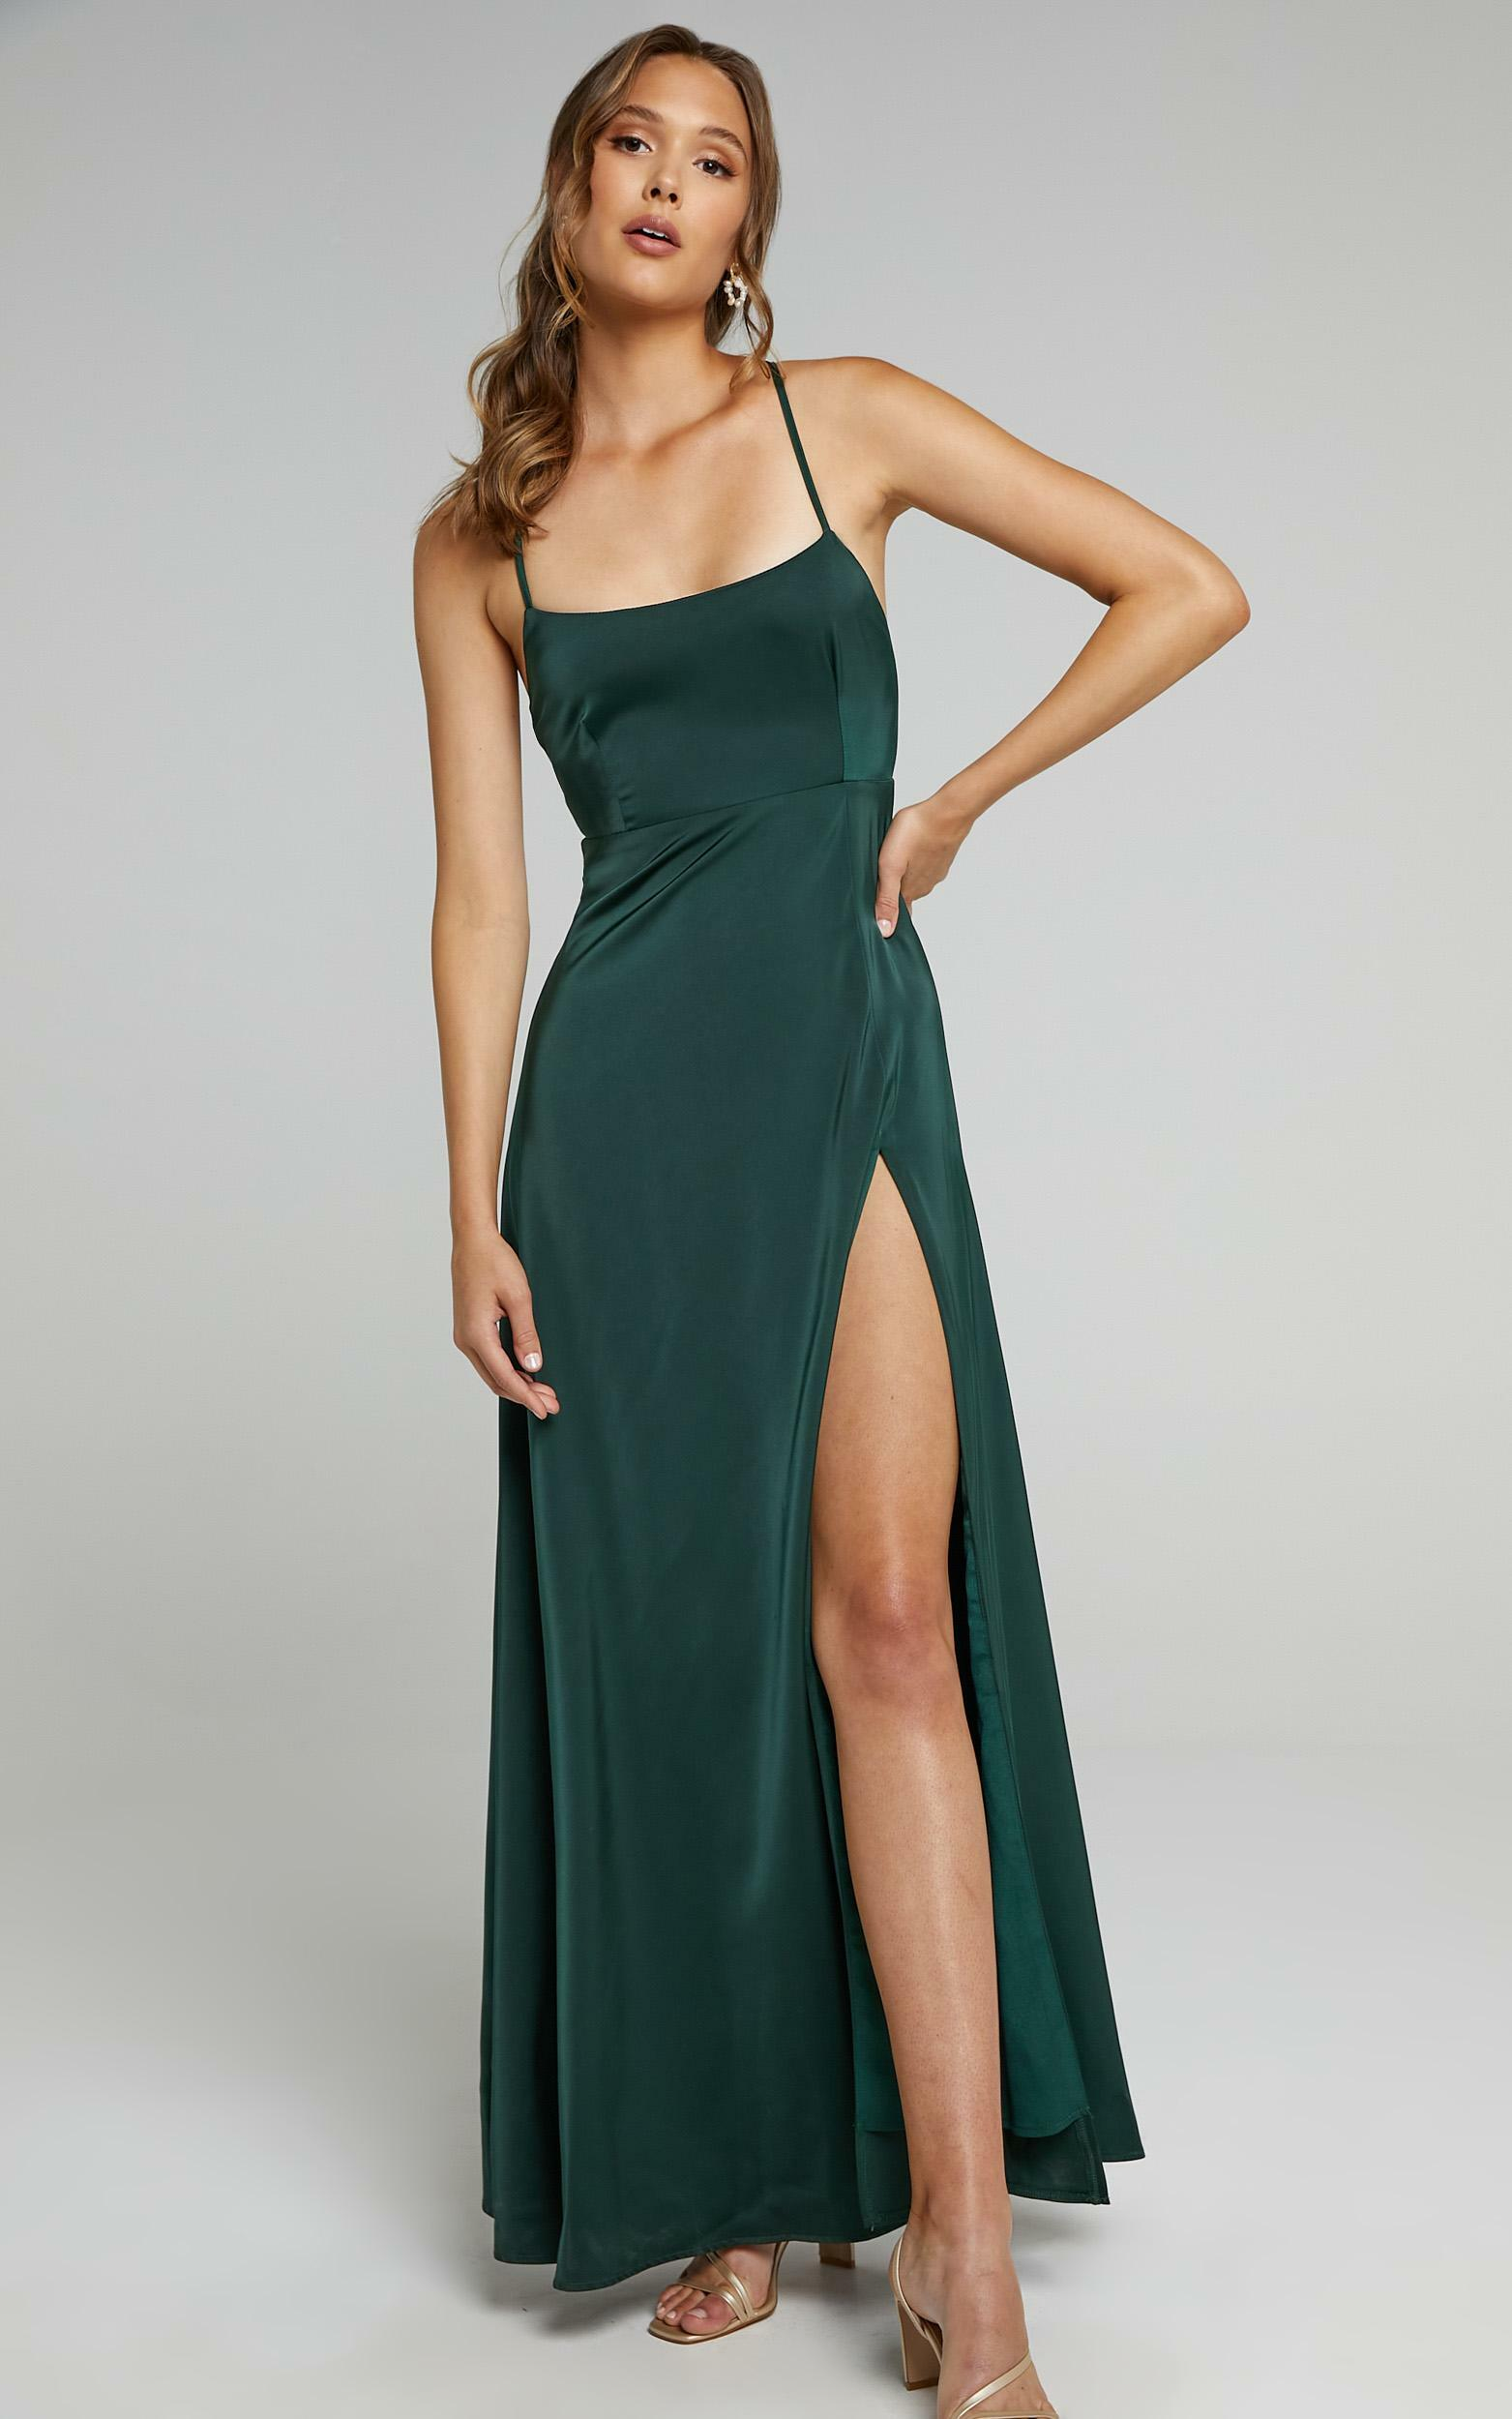 Will It Be Us Dress In Emerald  - 6 (XS), GRN7, hi-res image number null